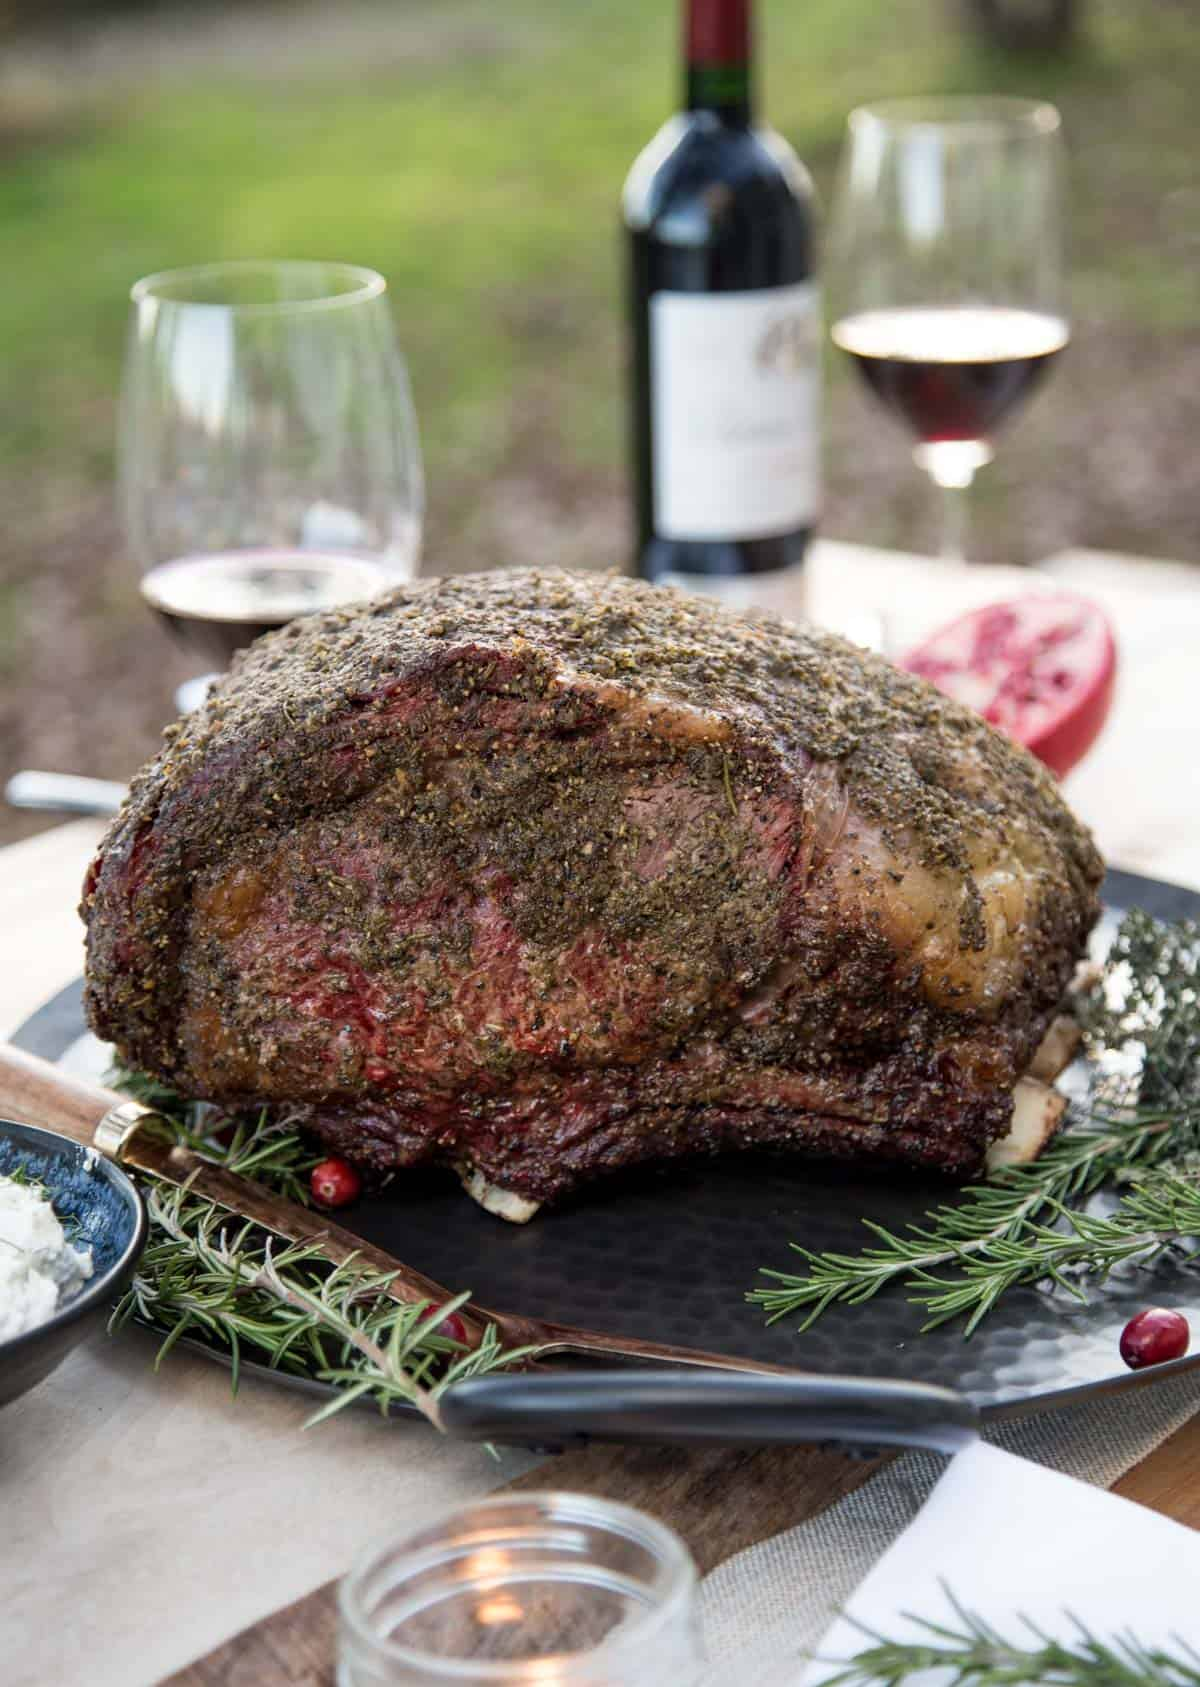 A smoked prime rib on a platter with a bottle of Syrah wine in the background